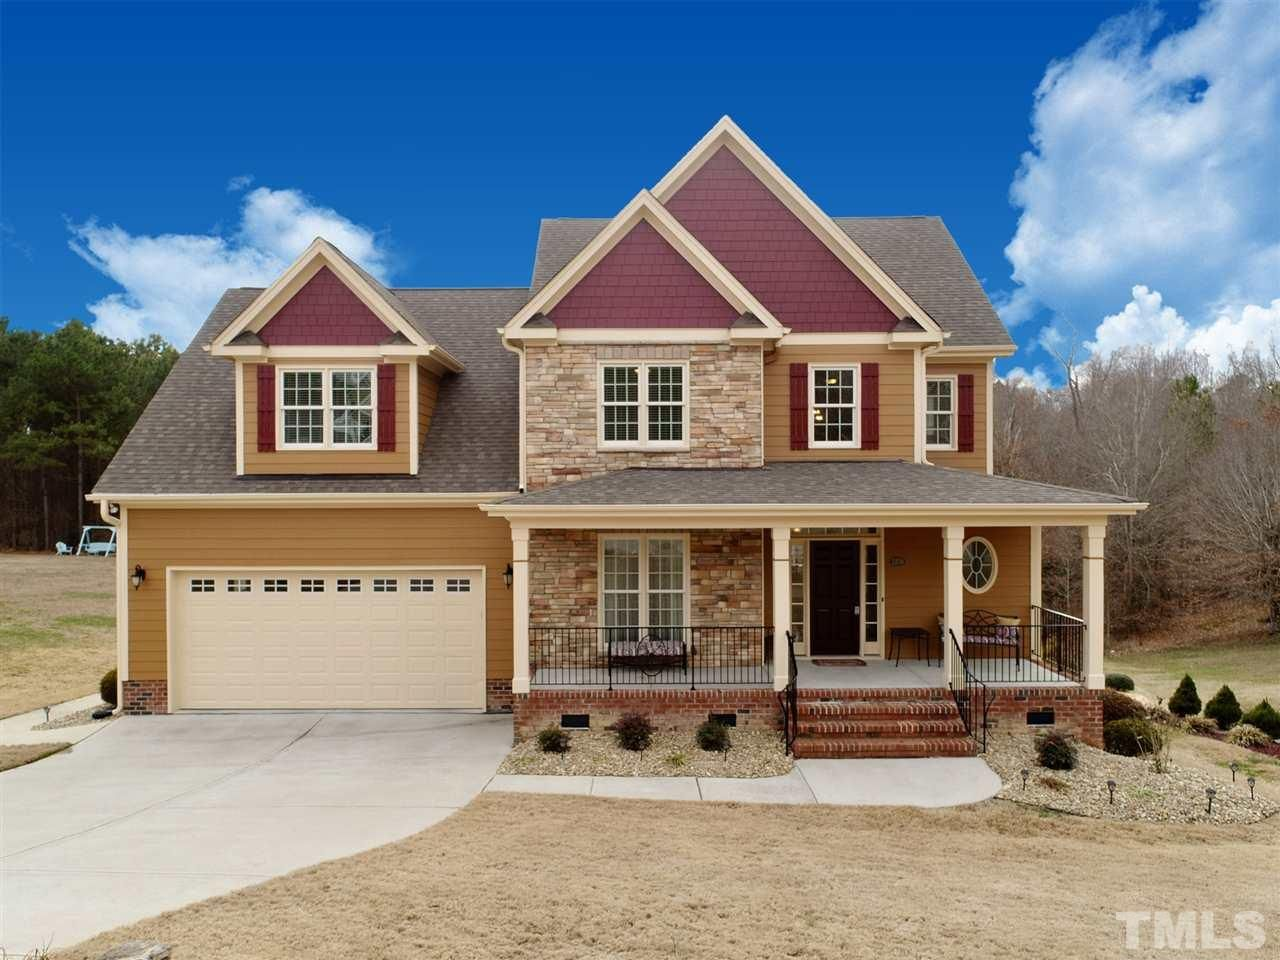 1208 River Chase Dr, Raleigh, NC 27610 - Estimate and Home Details ...